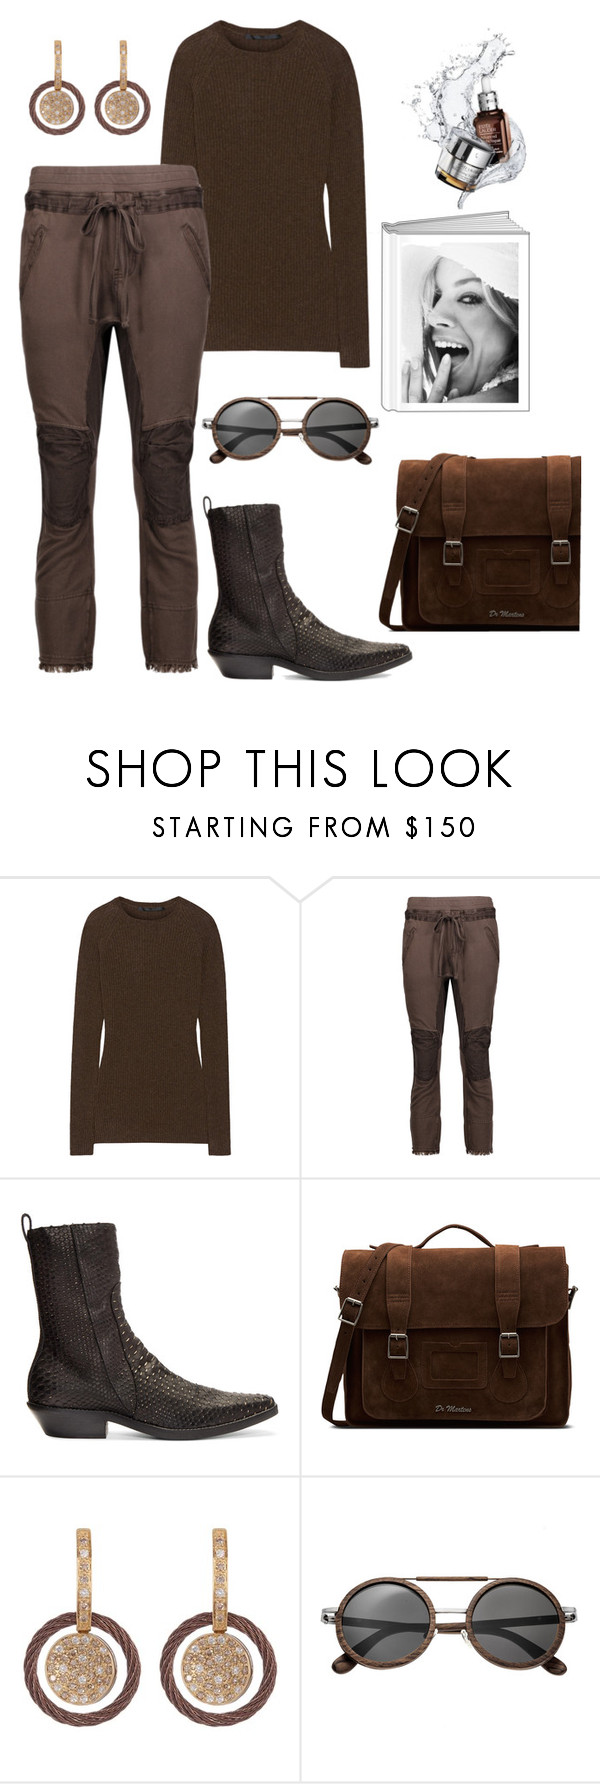 """Sienna."" by schenonek ❤ liked on Polyvore featuring Haider Ackermann, Dr. Martens, Alor and Earth"